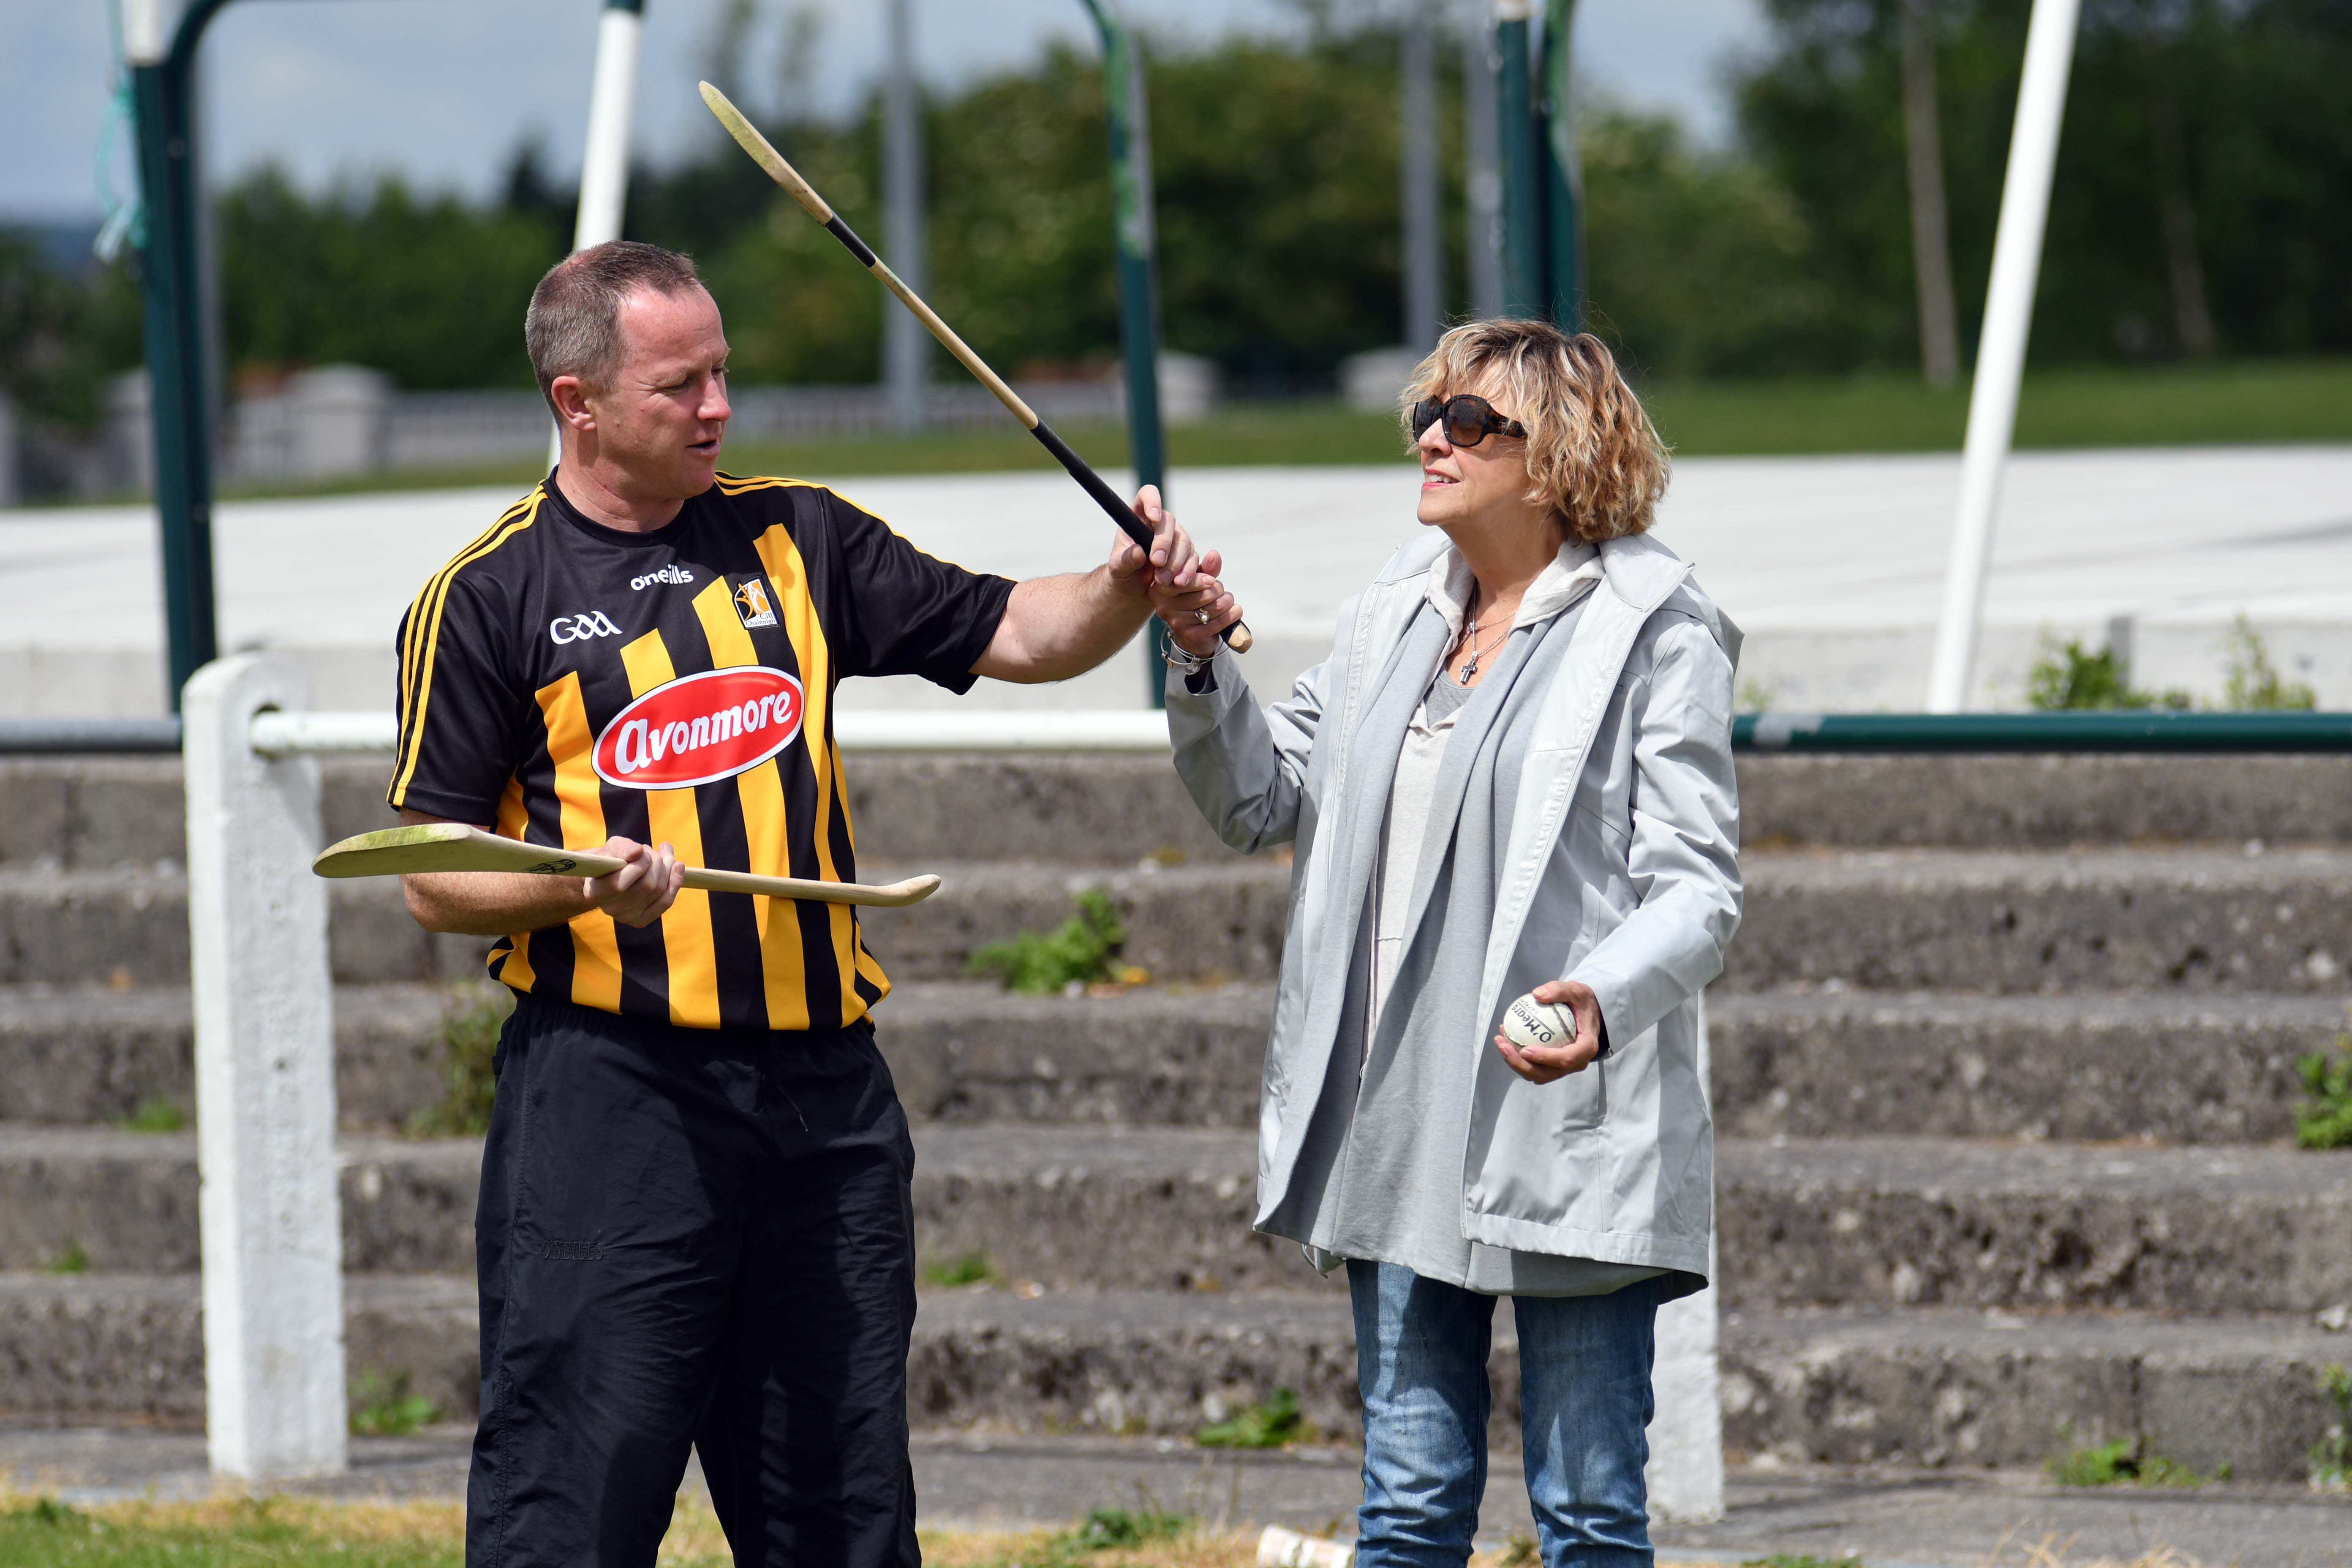 hurling_tour_kilkenny_5